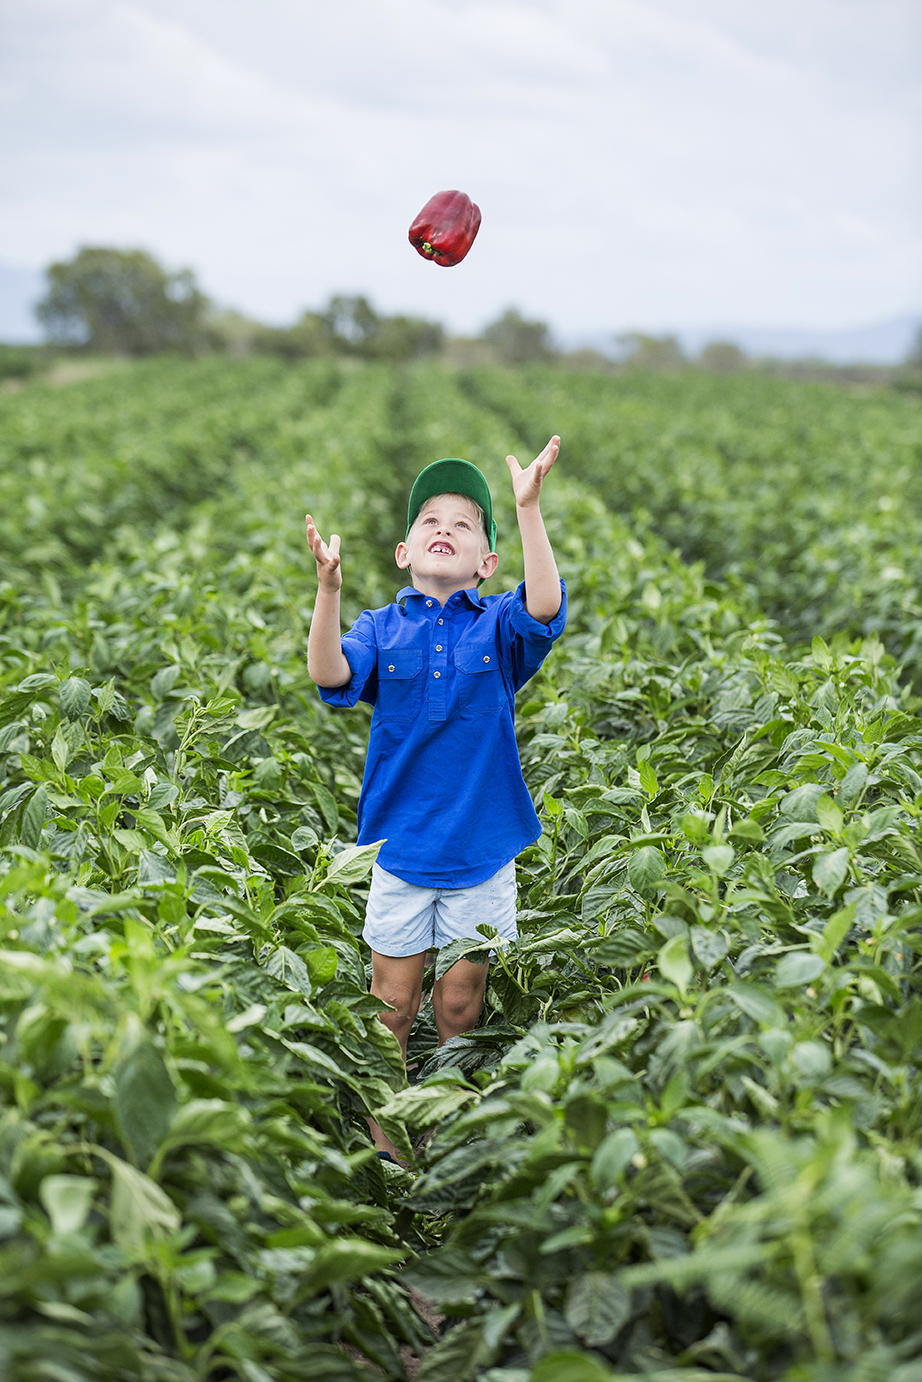 Rushel Farm Monsanto Commercial Marketing Photography